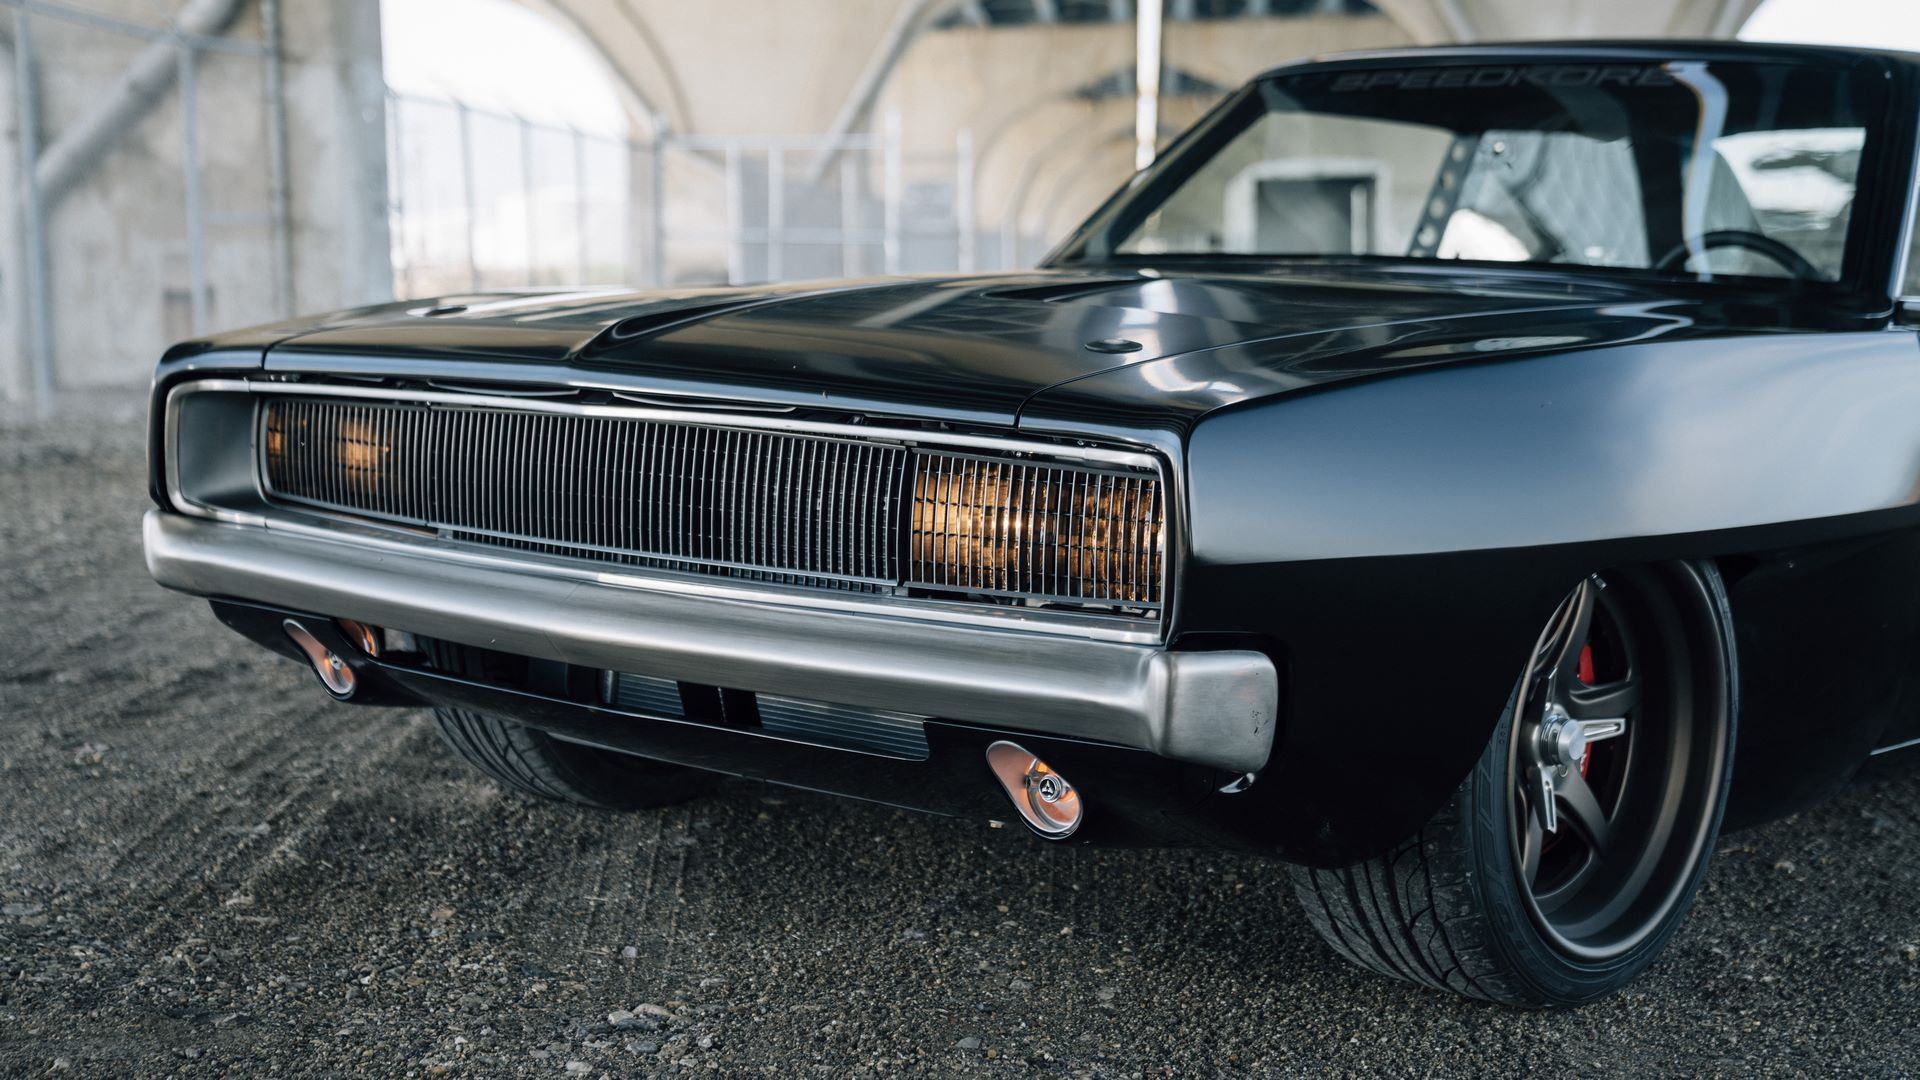 SpeedKore-Dodge-Charger-Hellacious-1968-10